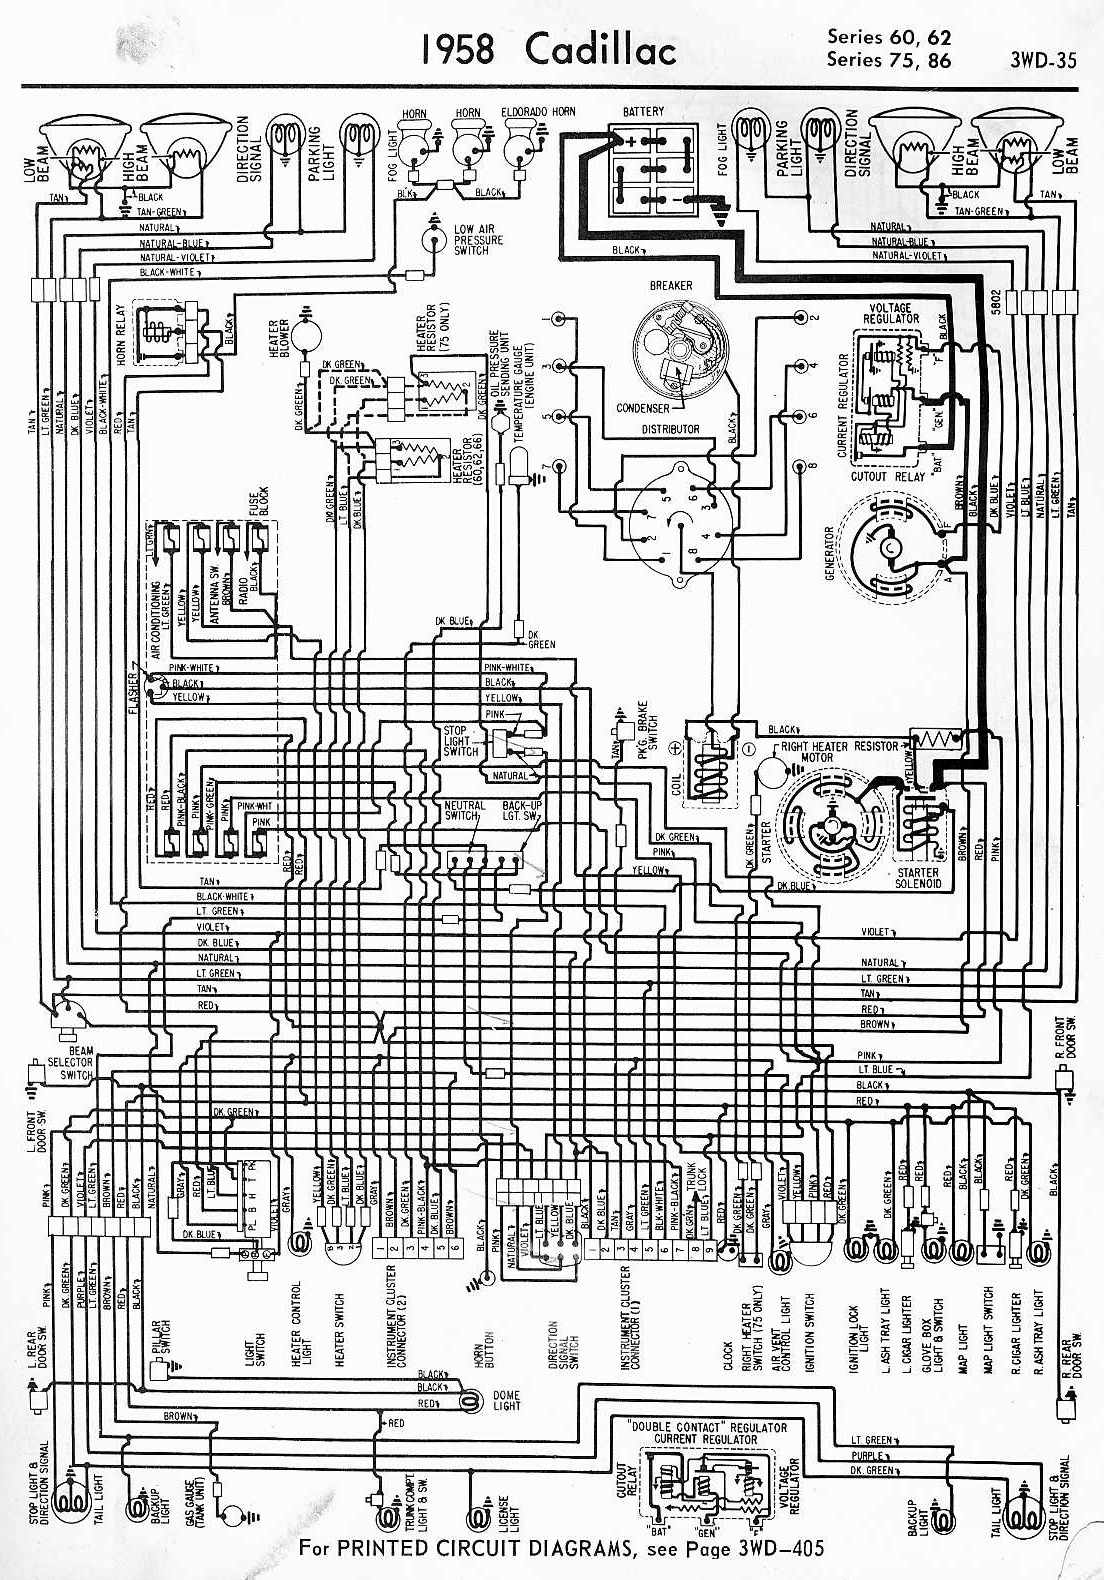 1979 cadillac coupe deville wiring diagram arbortech us rh arbortech us 1979 cadillac seville wiring diagram Wiring Harness 2003 Cadillac CTS